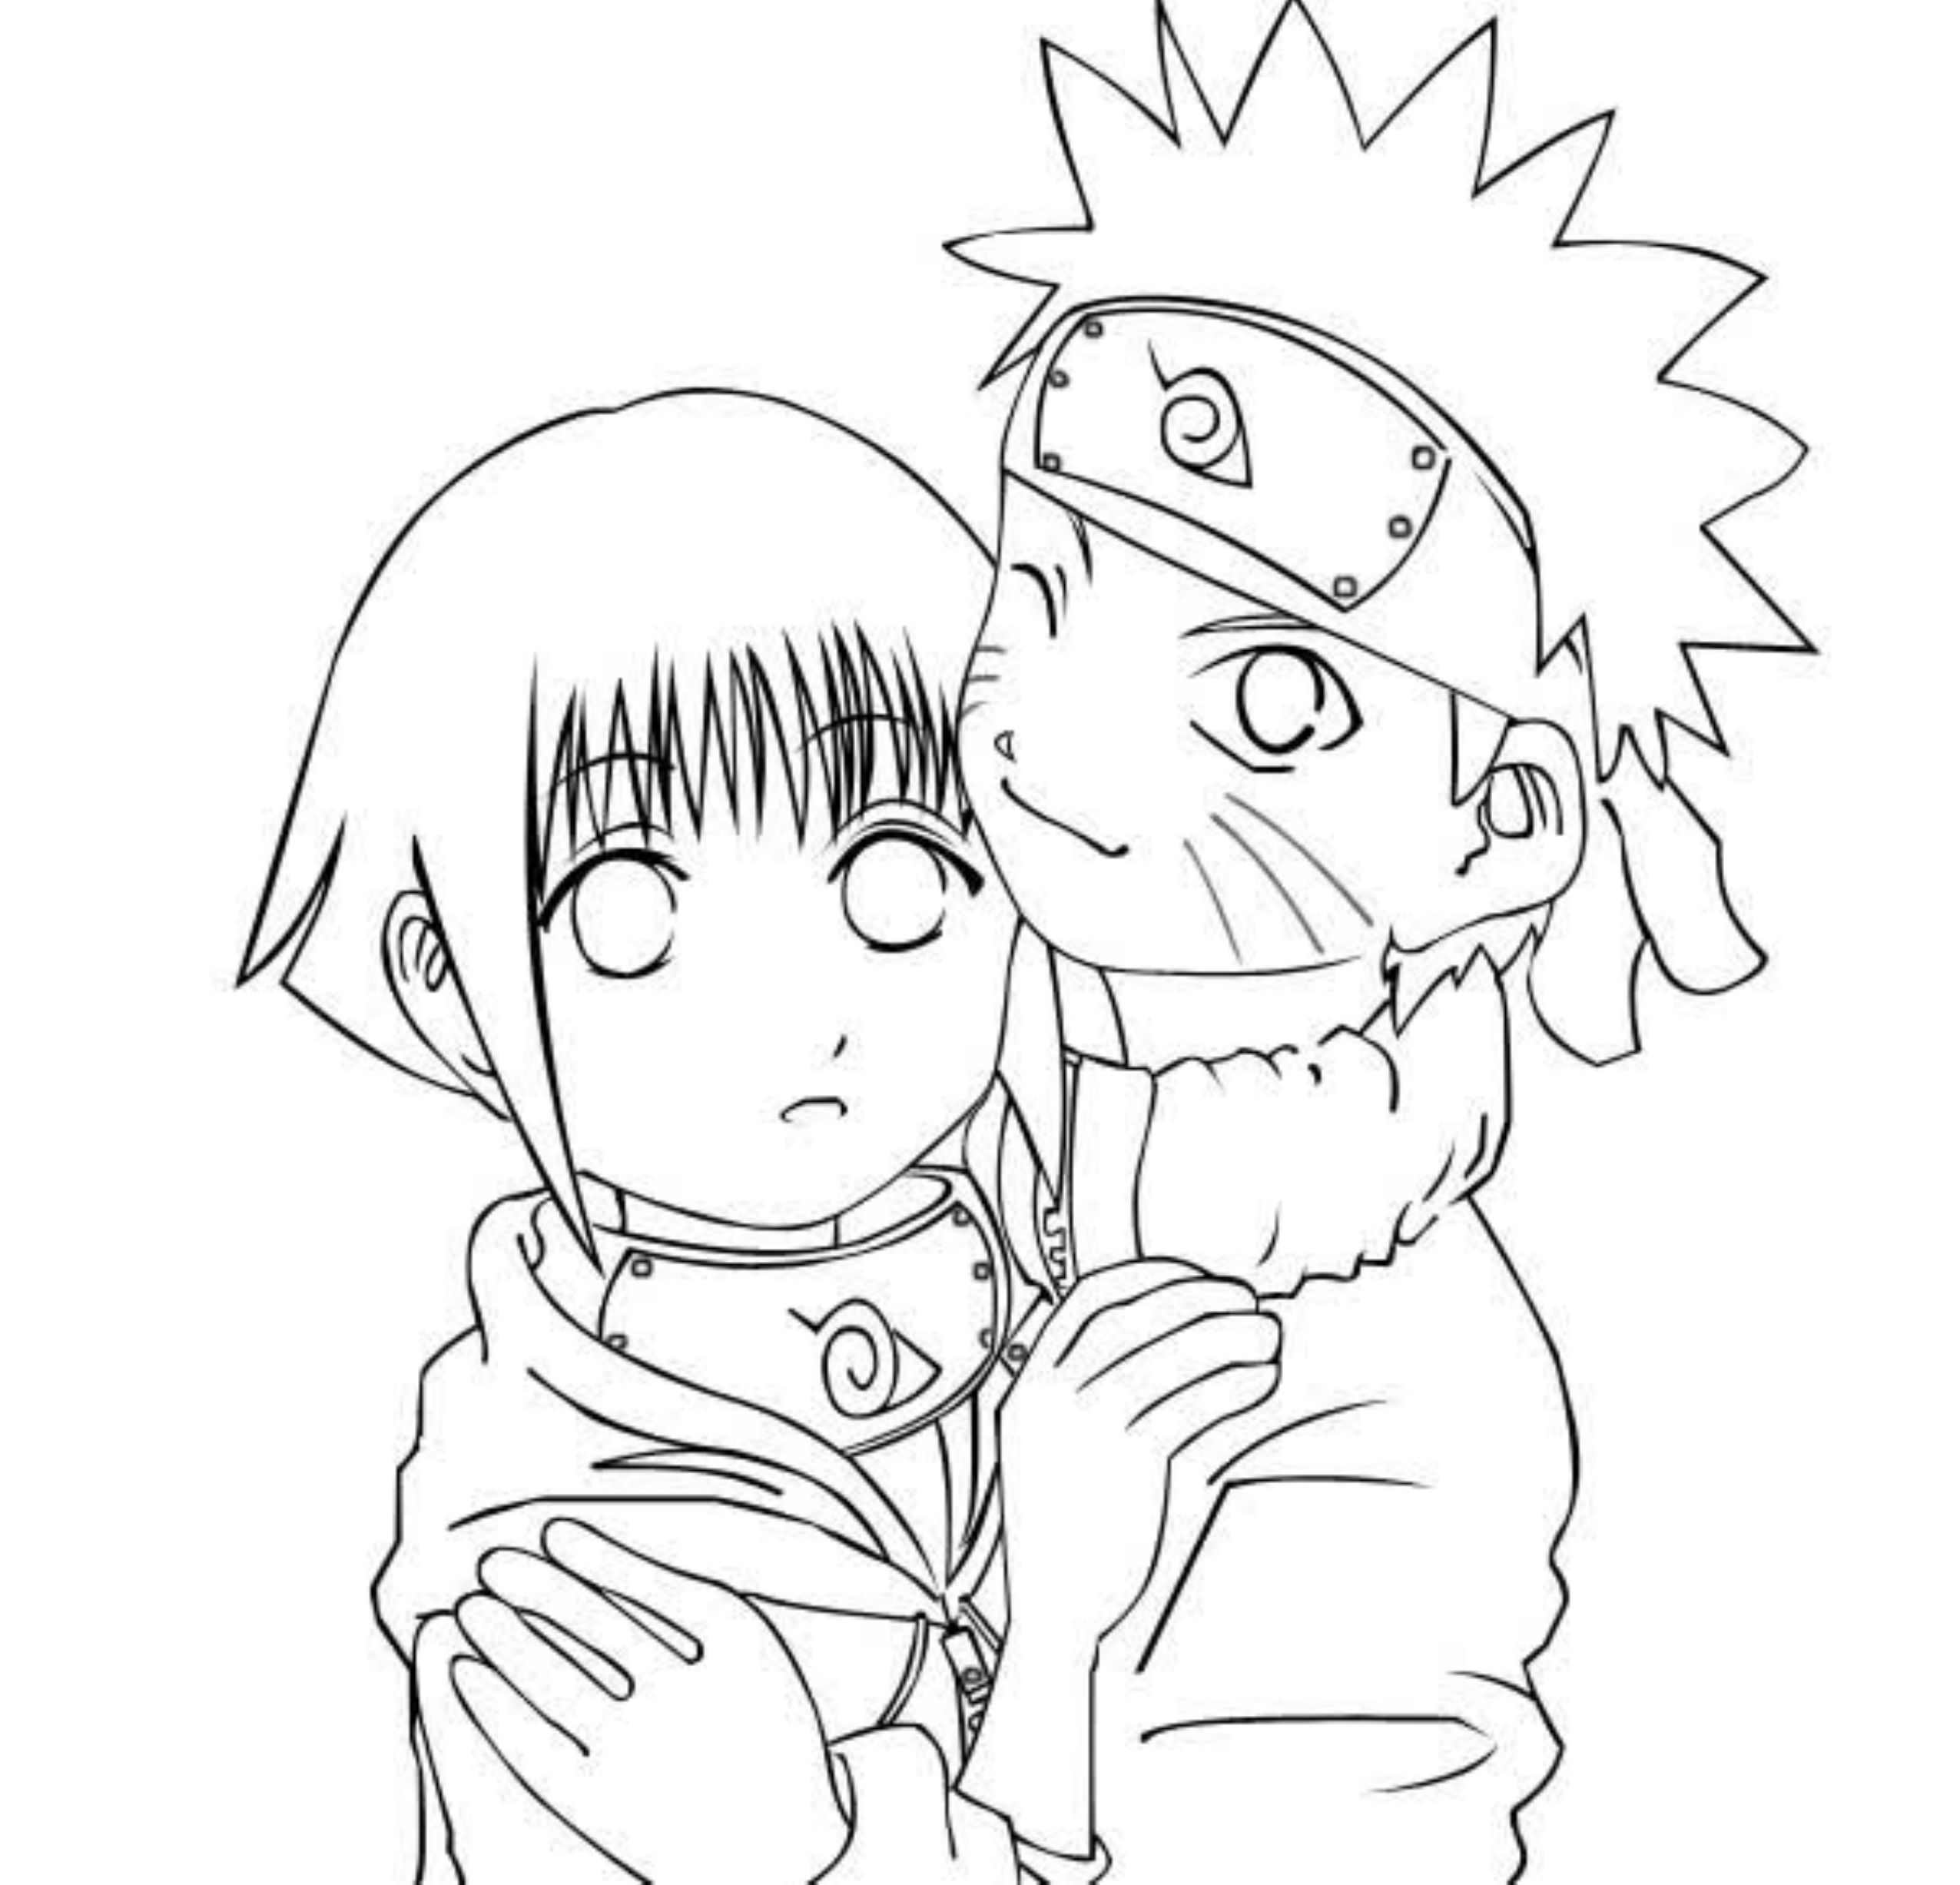 coloring pages of naruto - photo#33